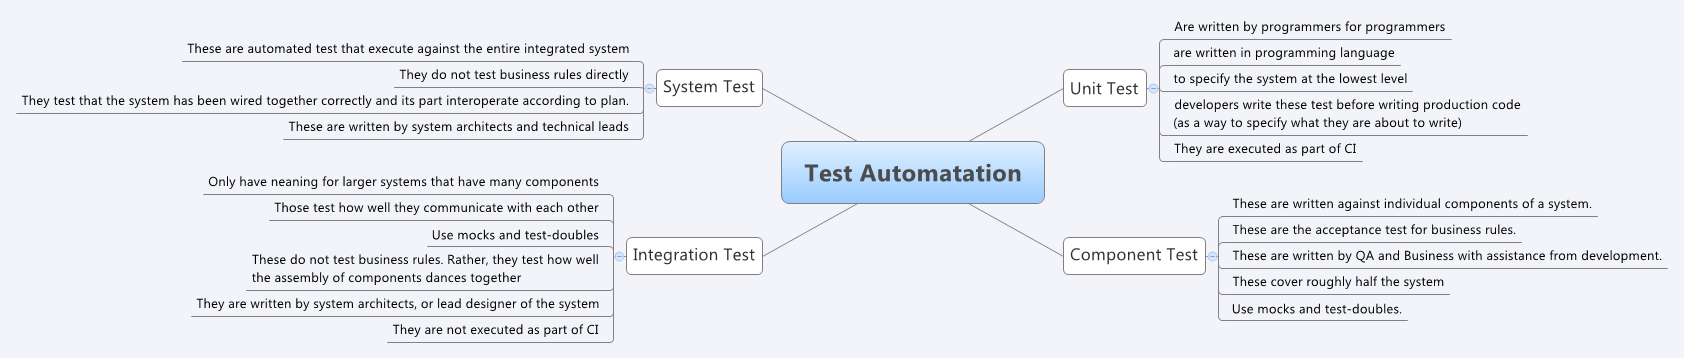 Test Automatation - XMind - Mind Mapping Software